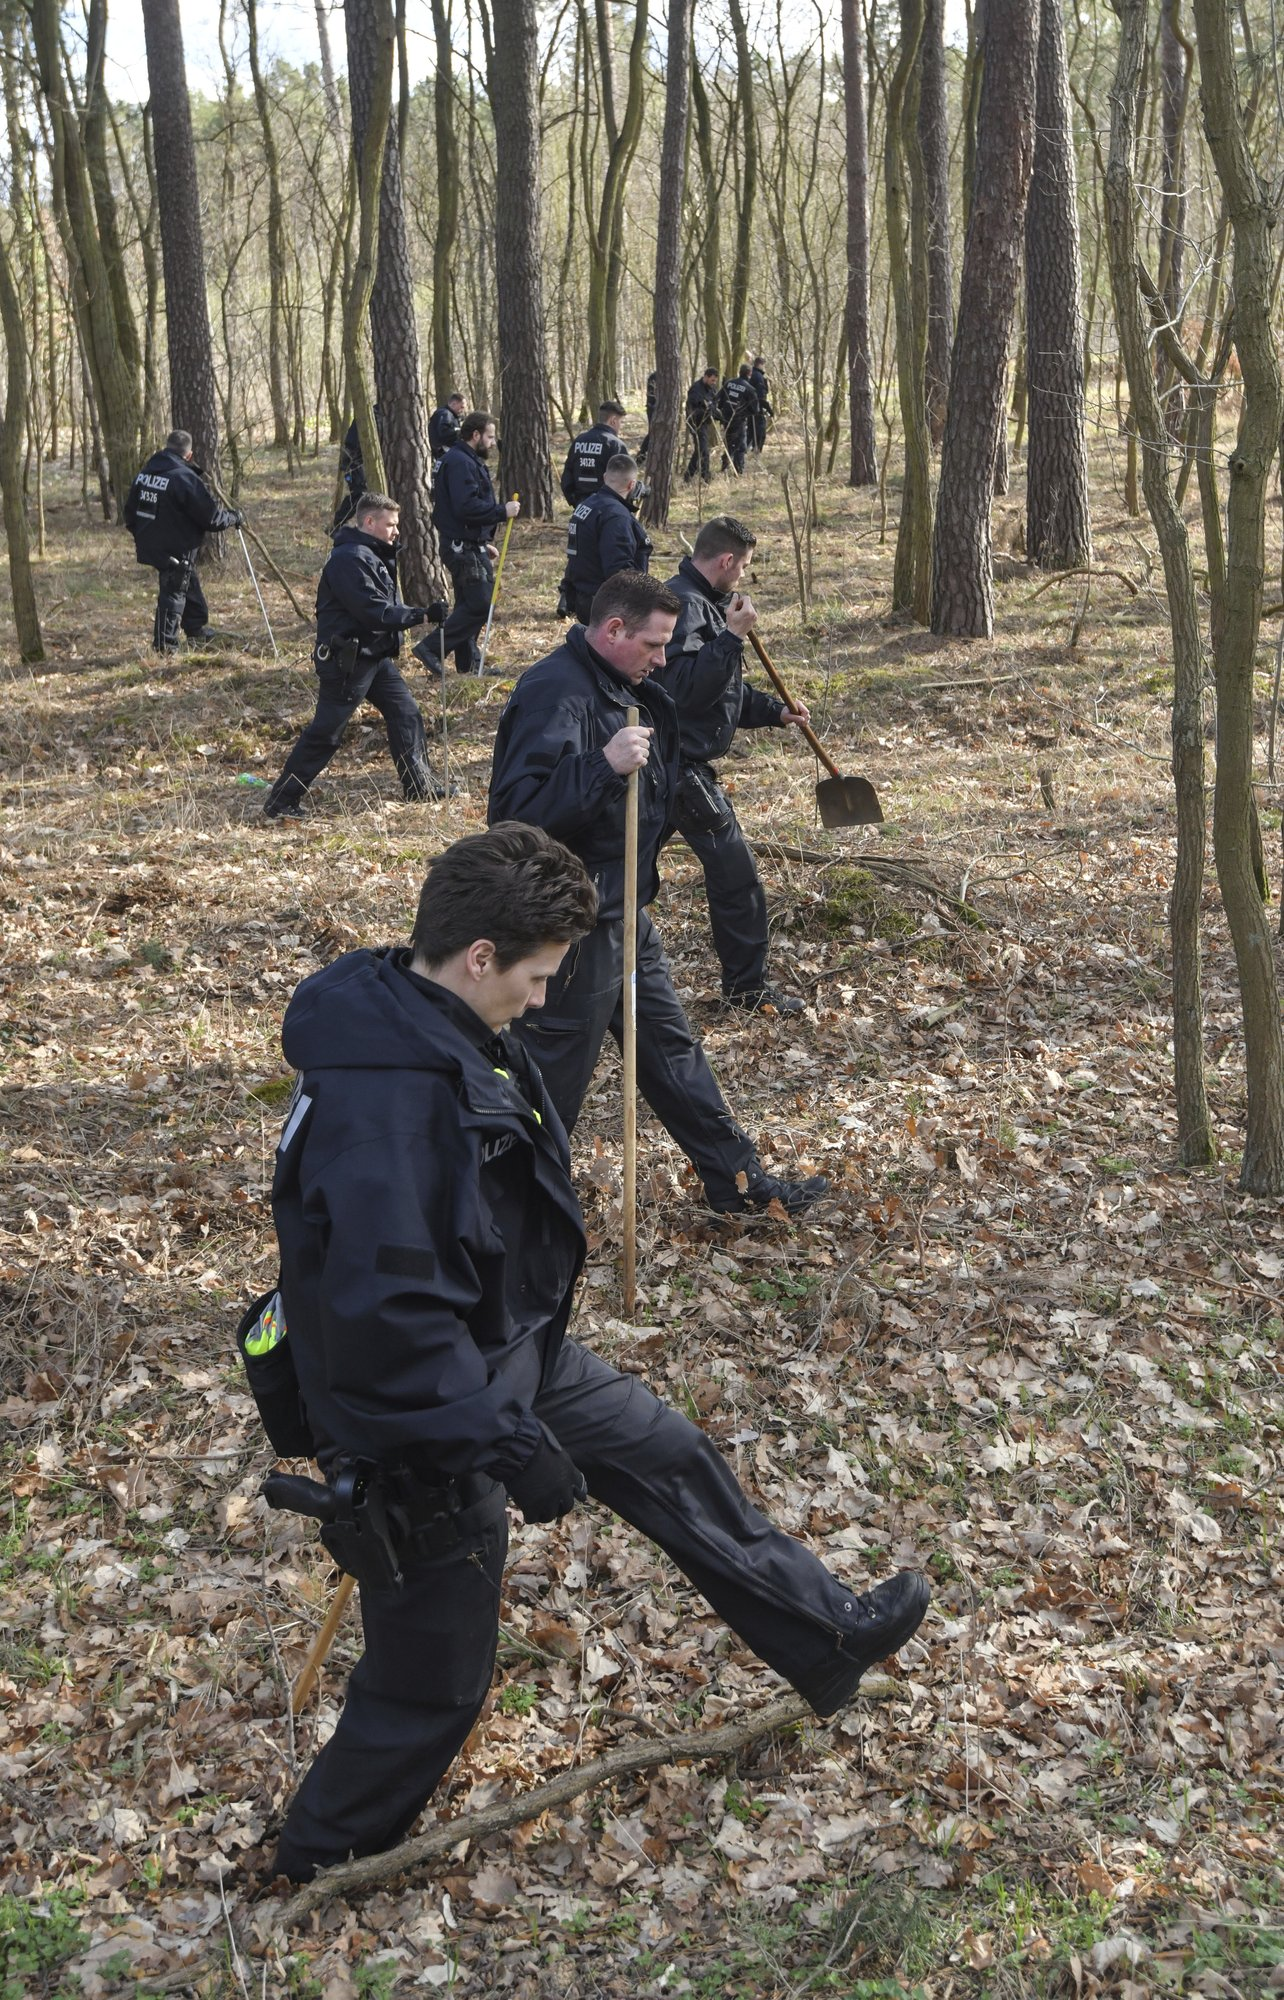 Berlin police searches a forest in Kummersdorf, Germany